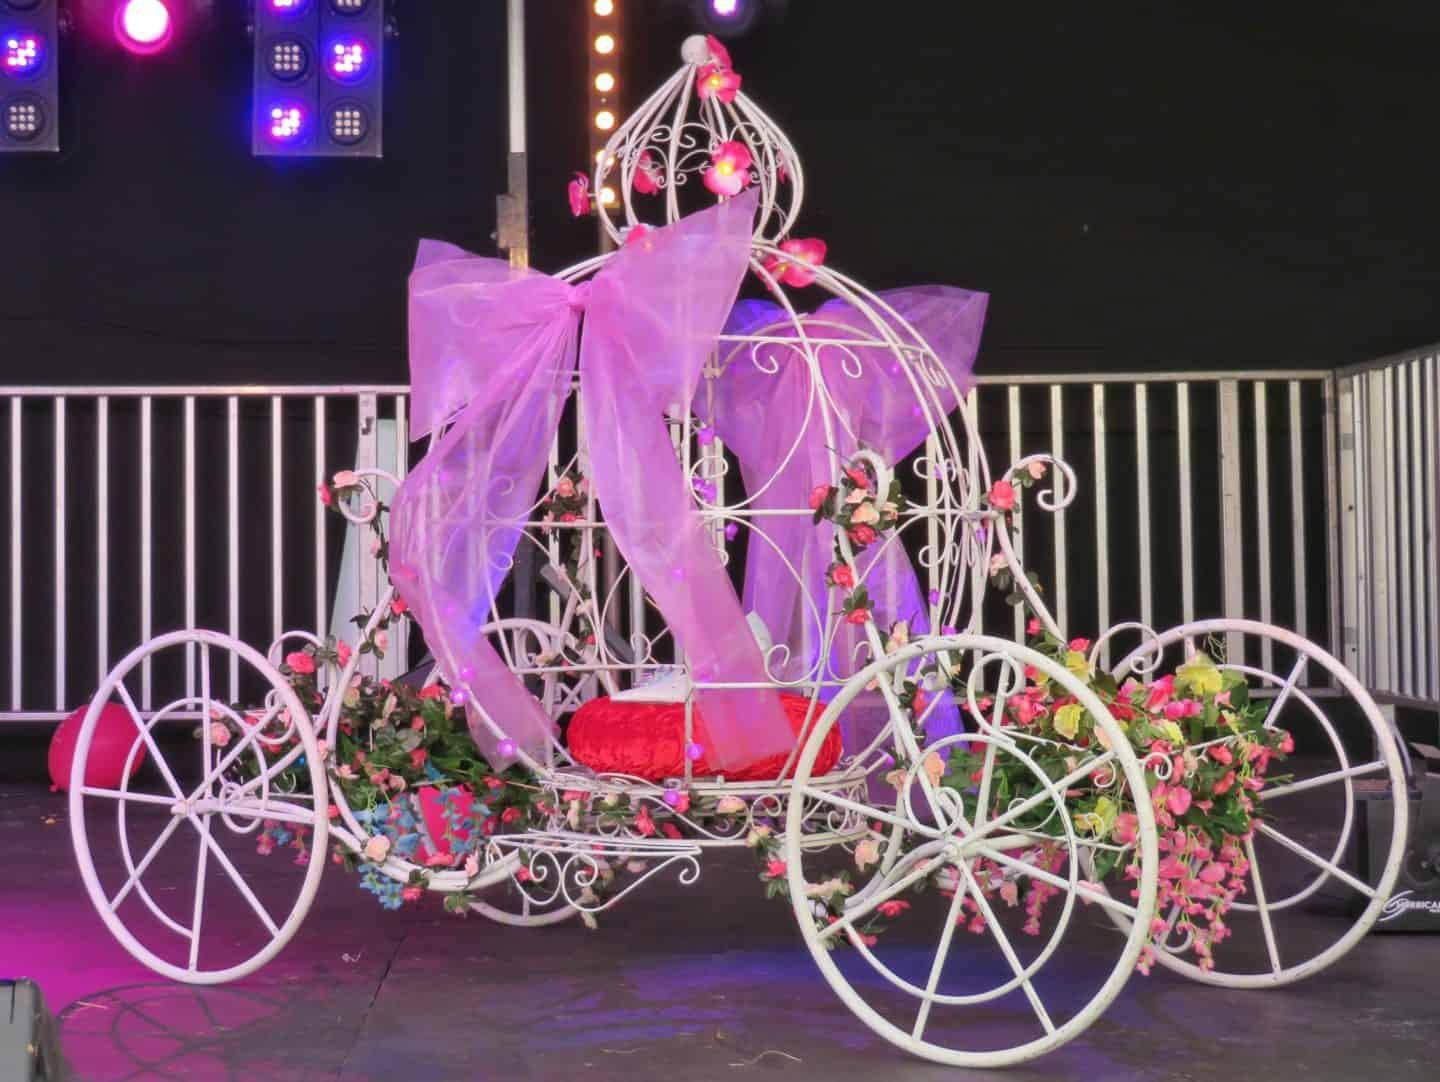 princess carriage at sunshine festival 2019